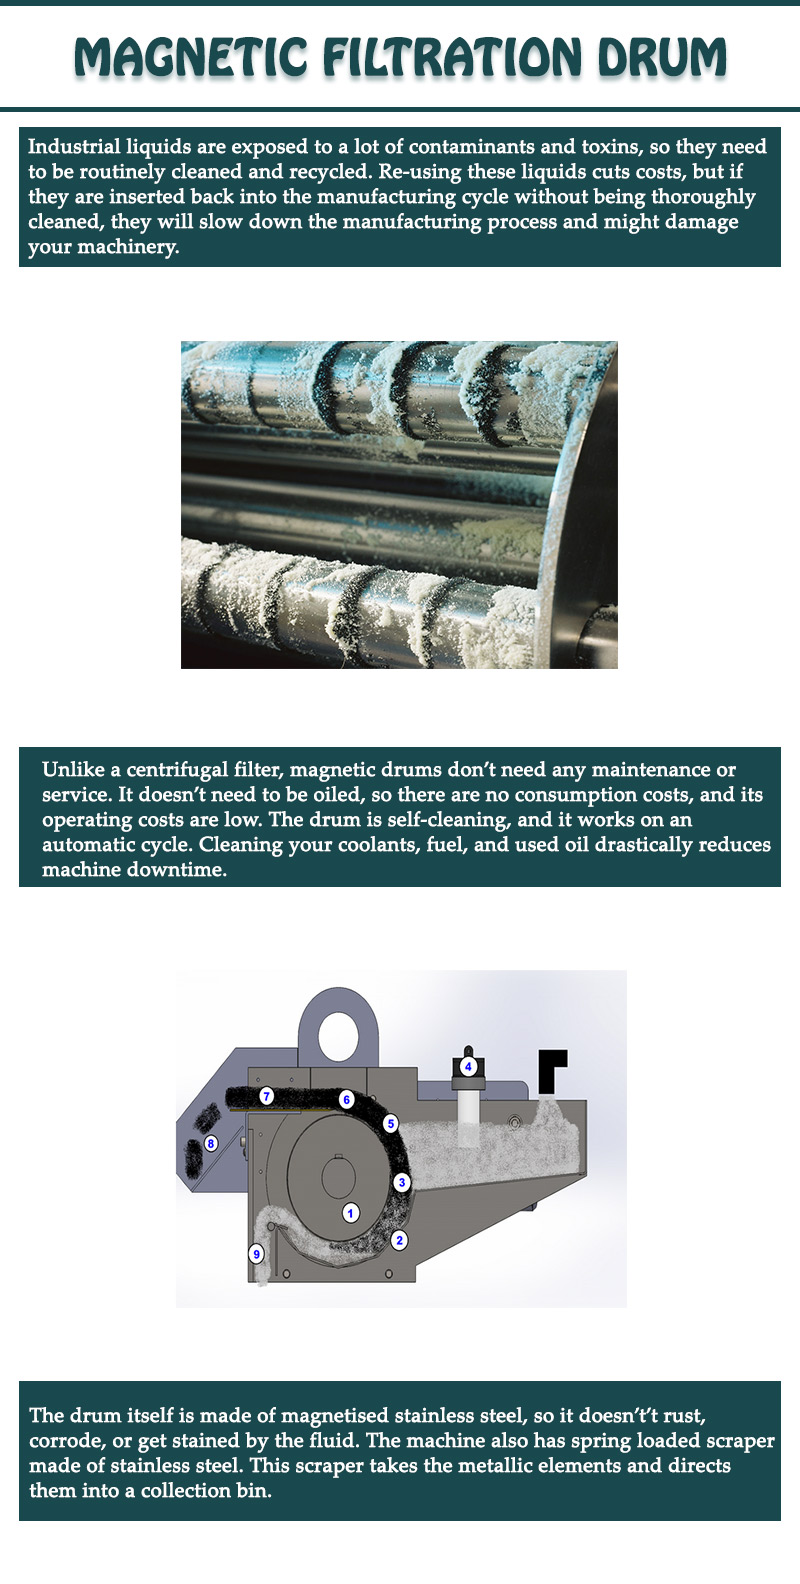 Why Magnetic Drum Is Used for Industrial Cleaning Process?